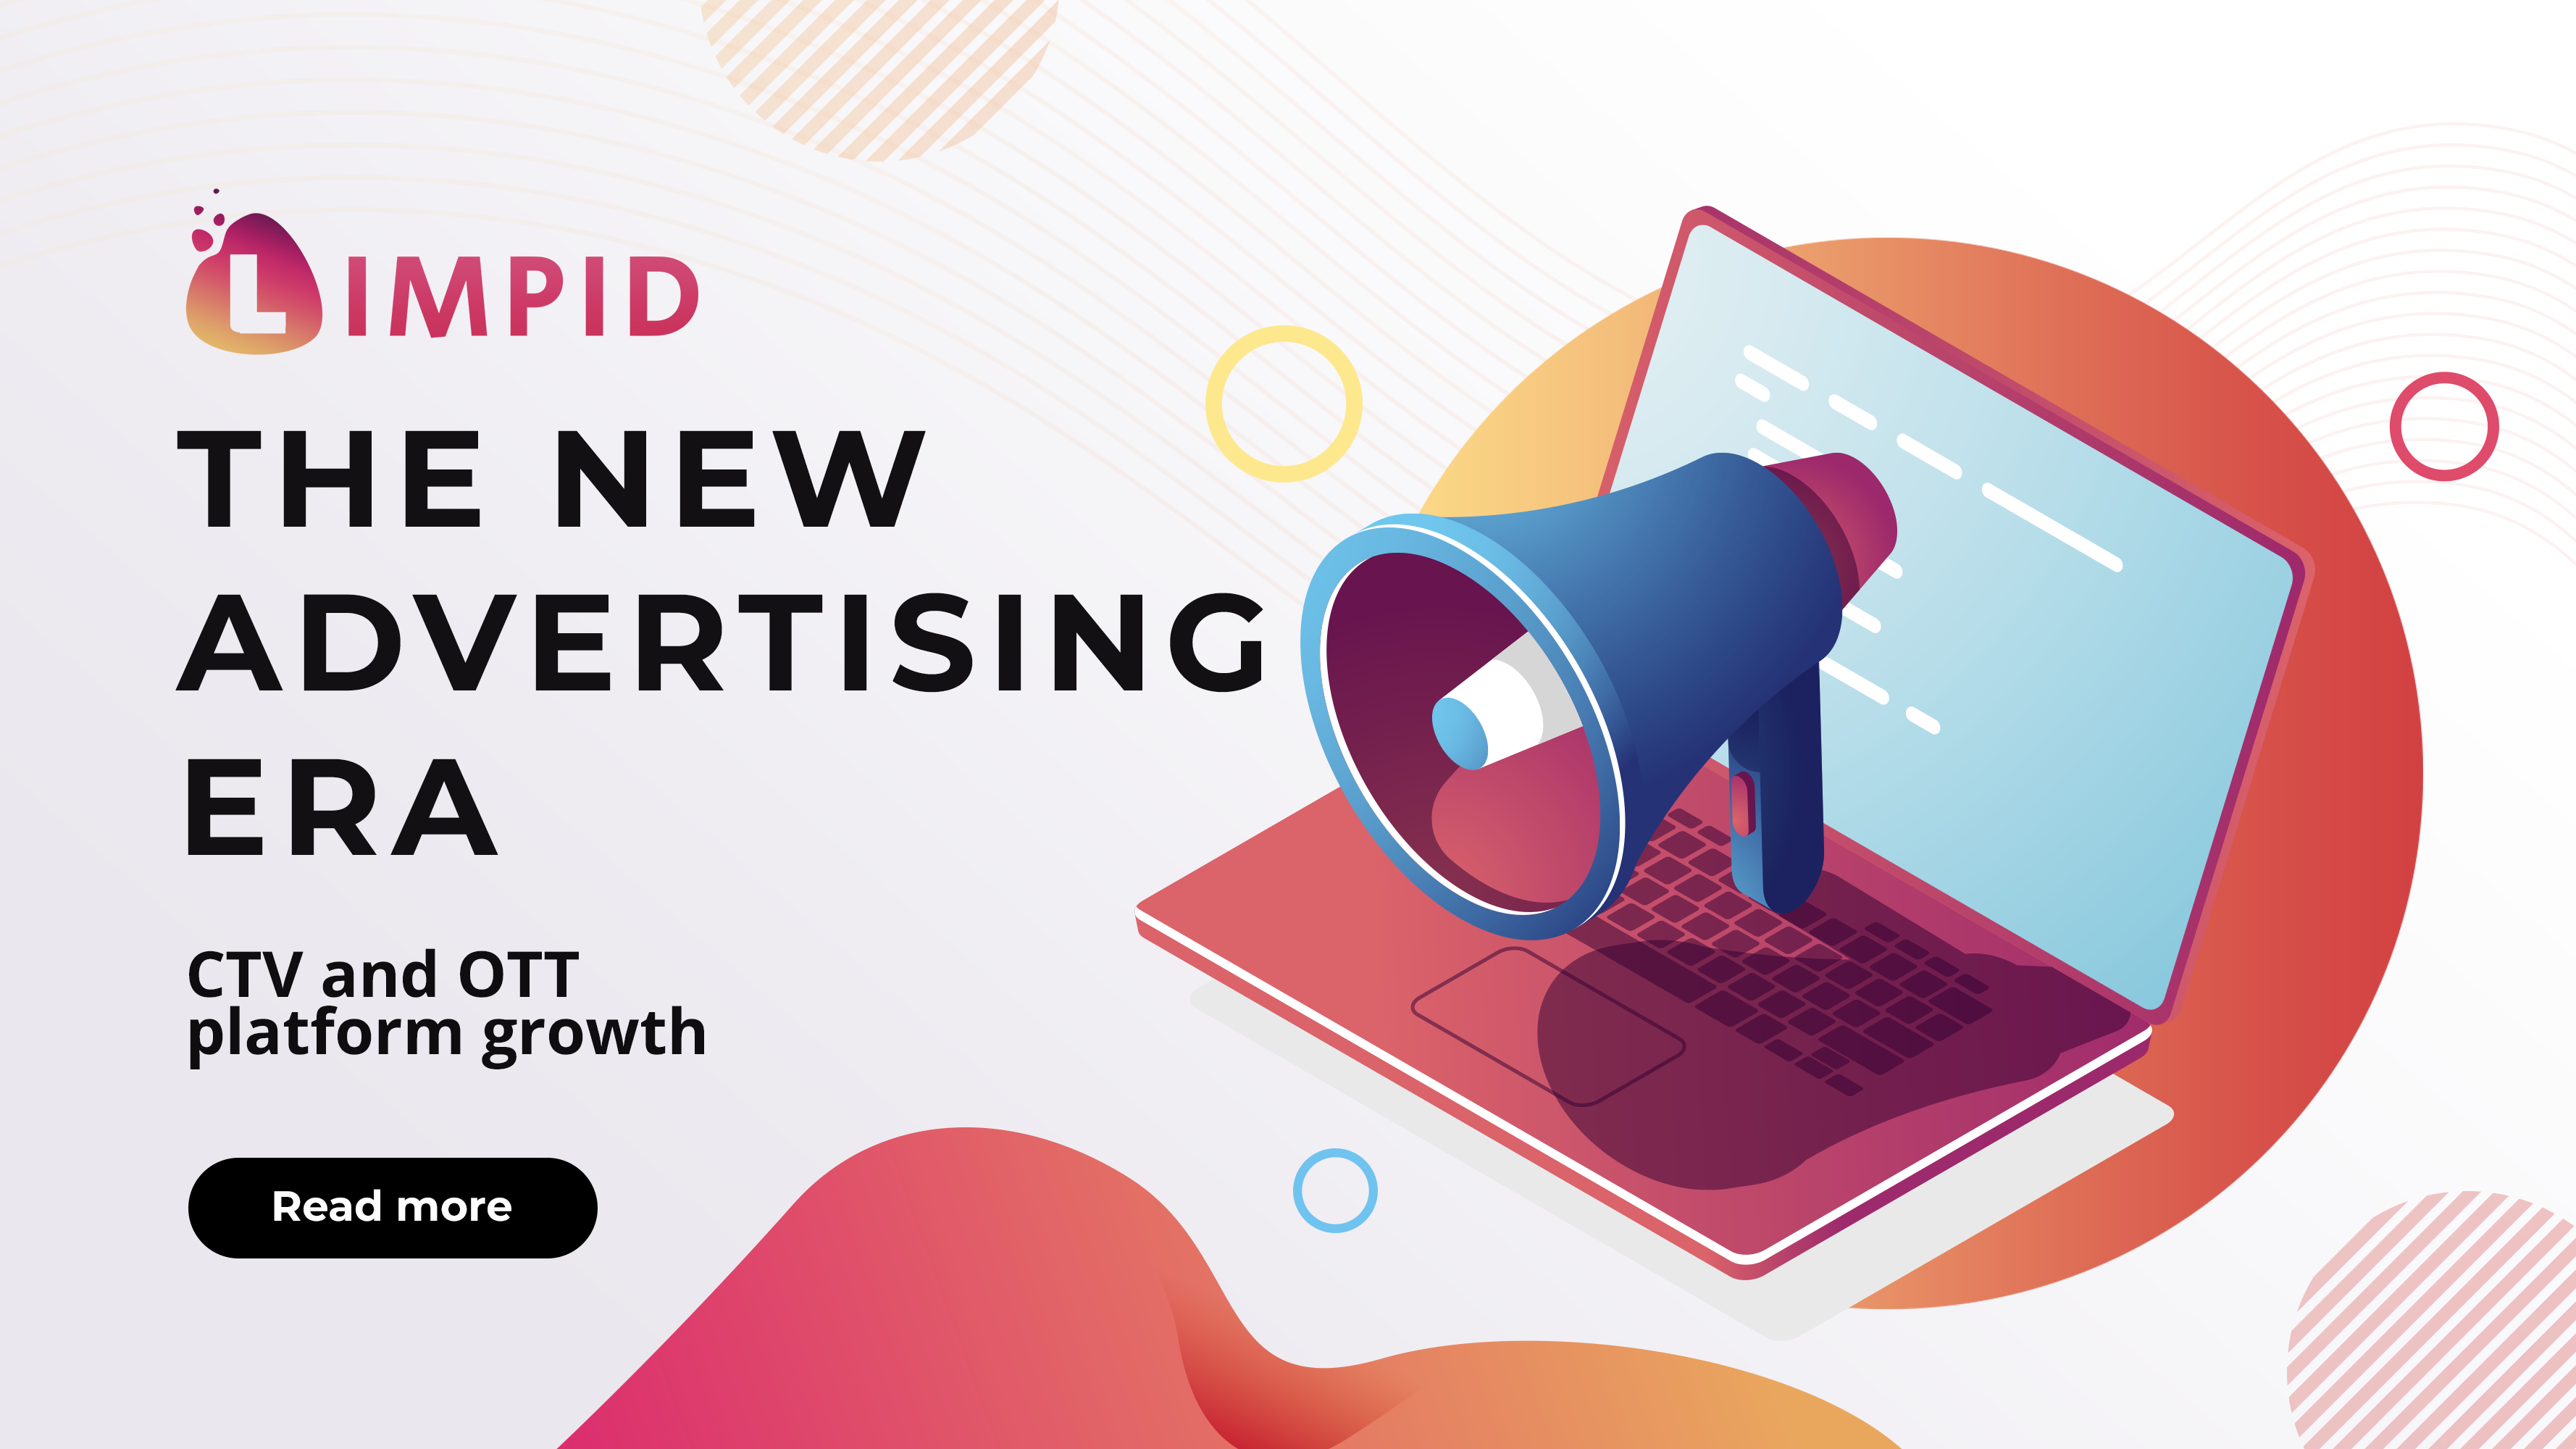 The new advertising era: CTV and OTT platform growth